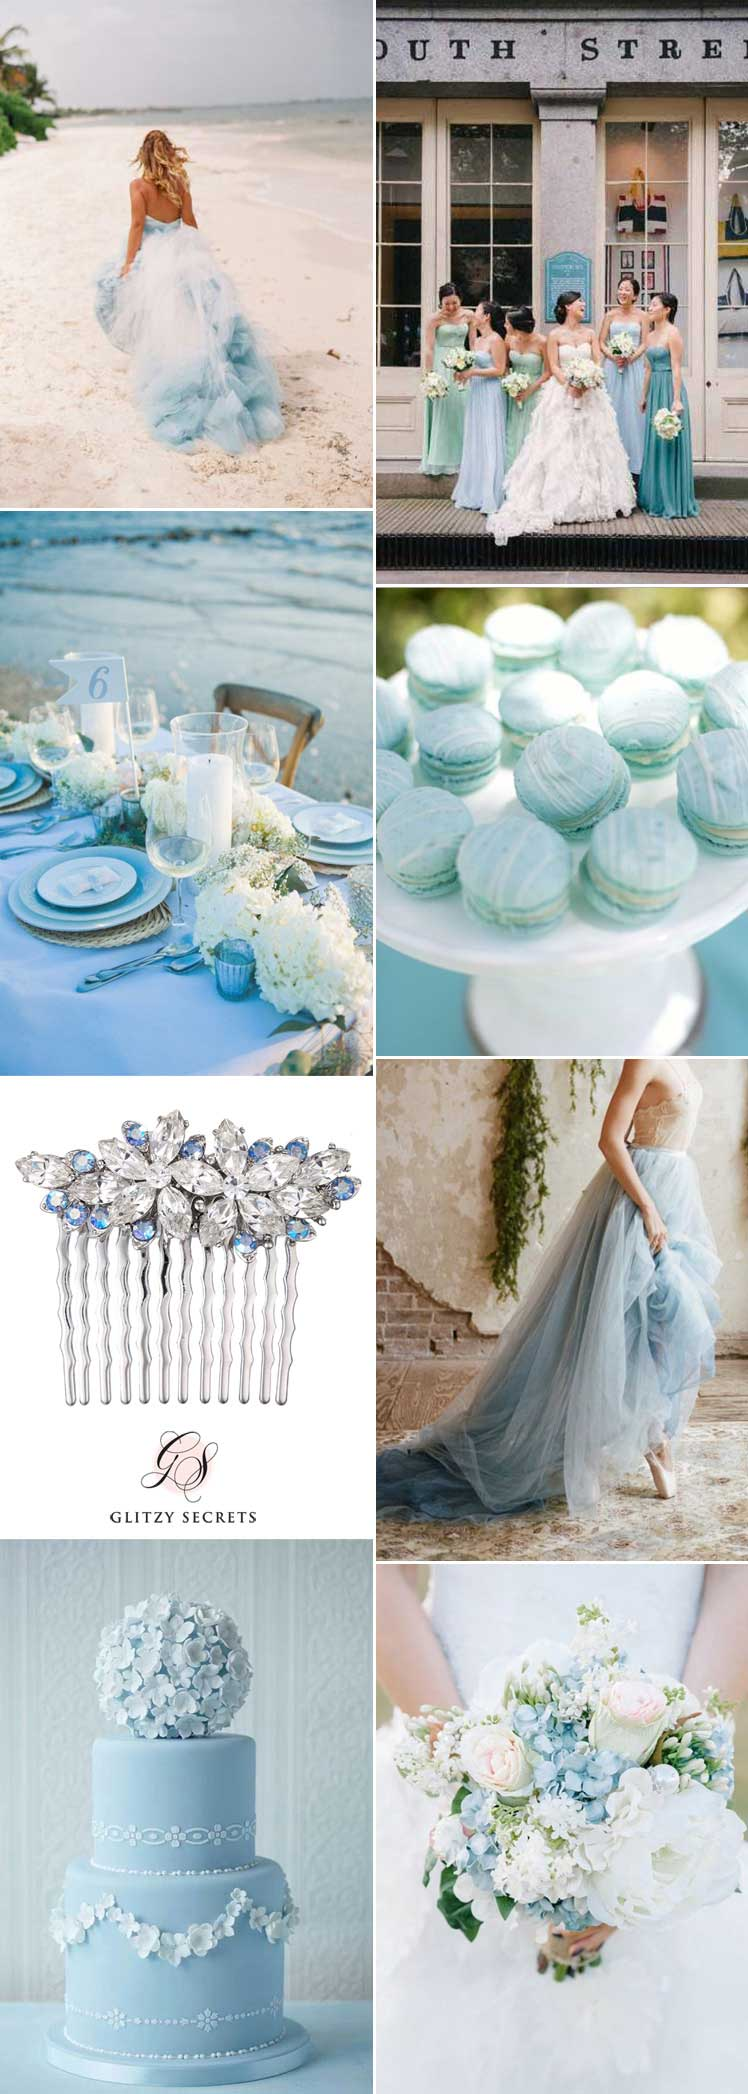 inspirational pale blue wedding ideas for your special day